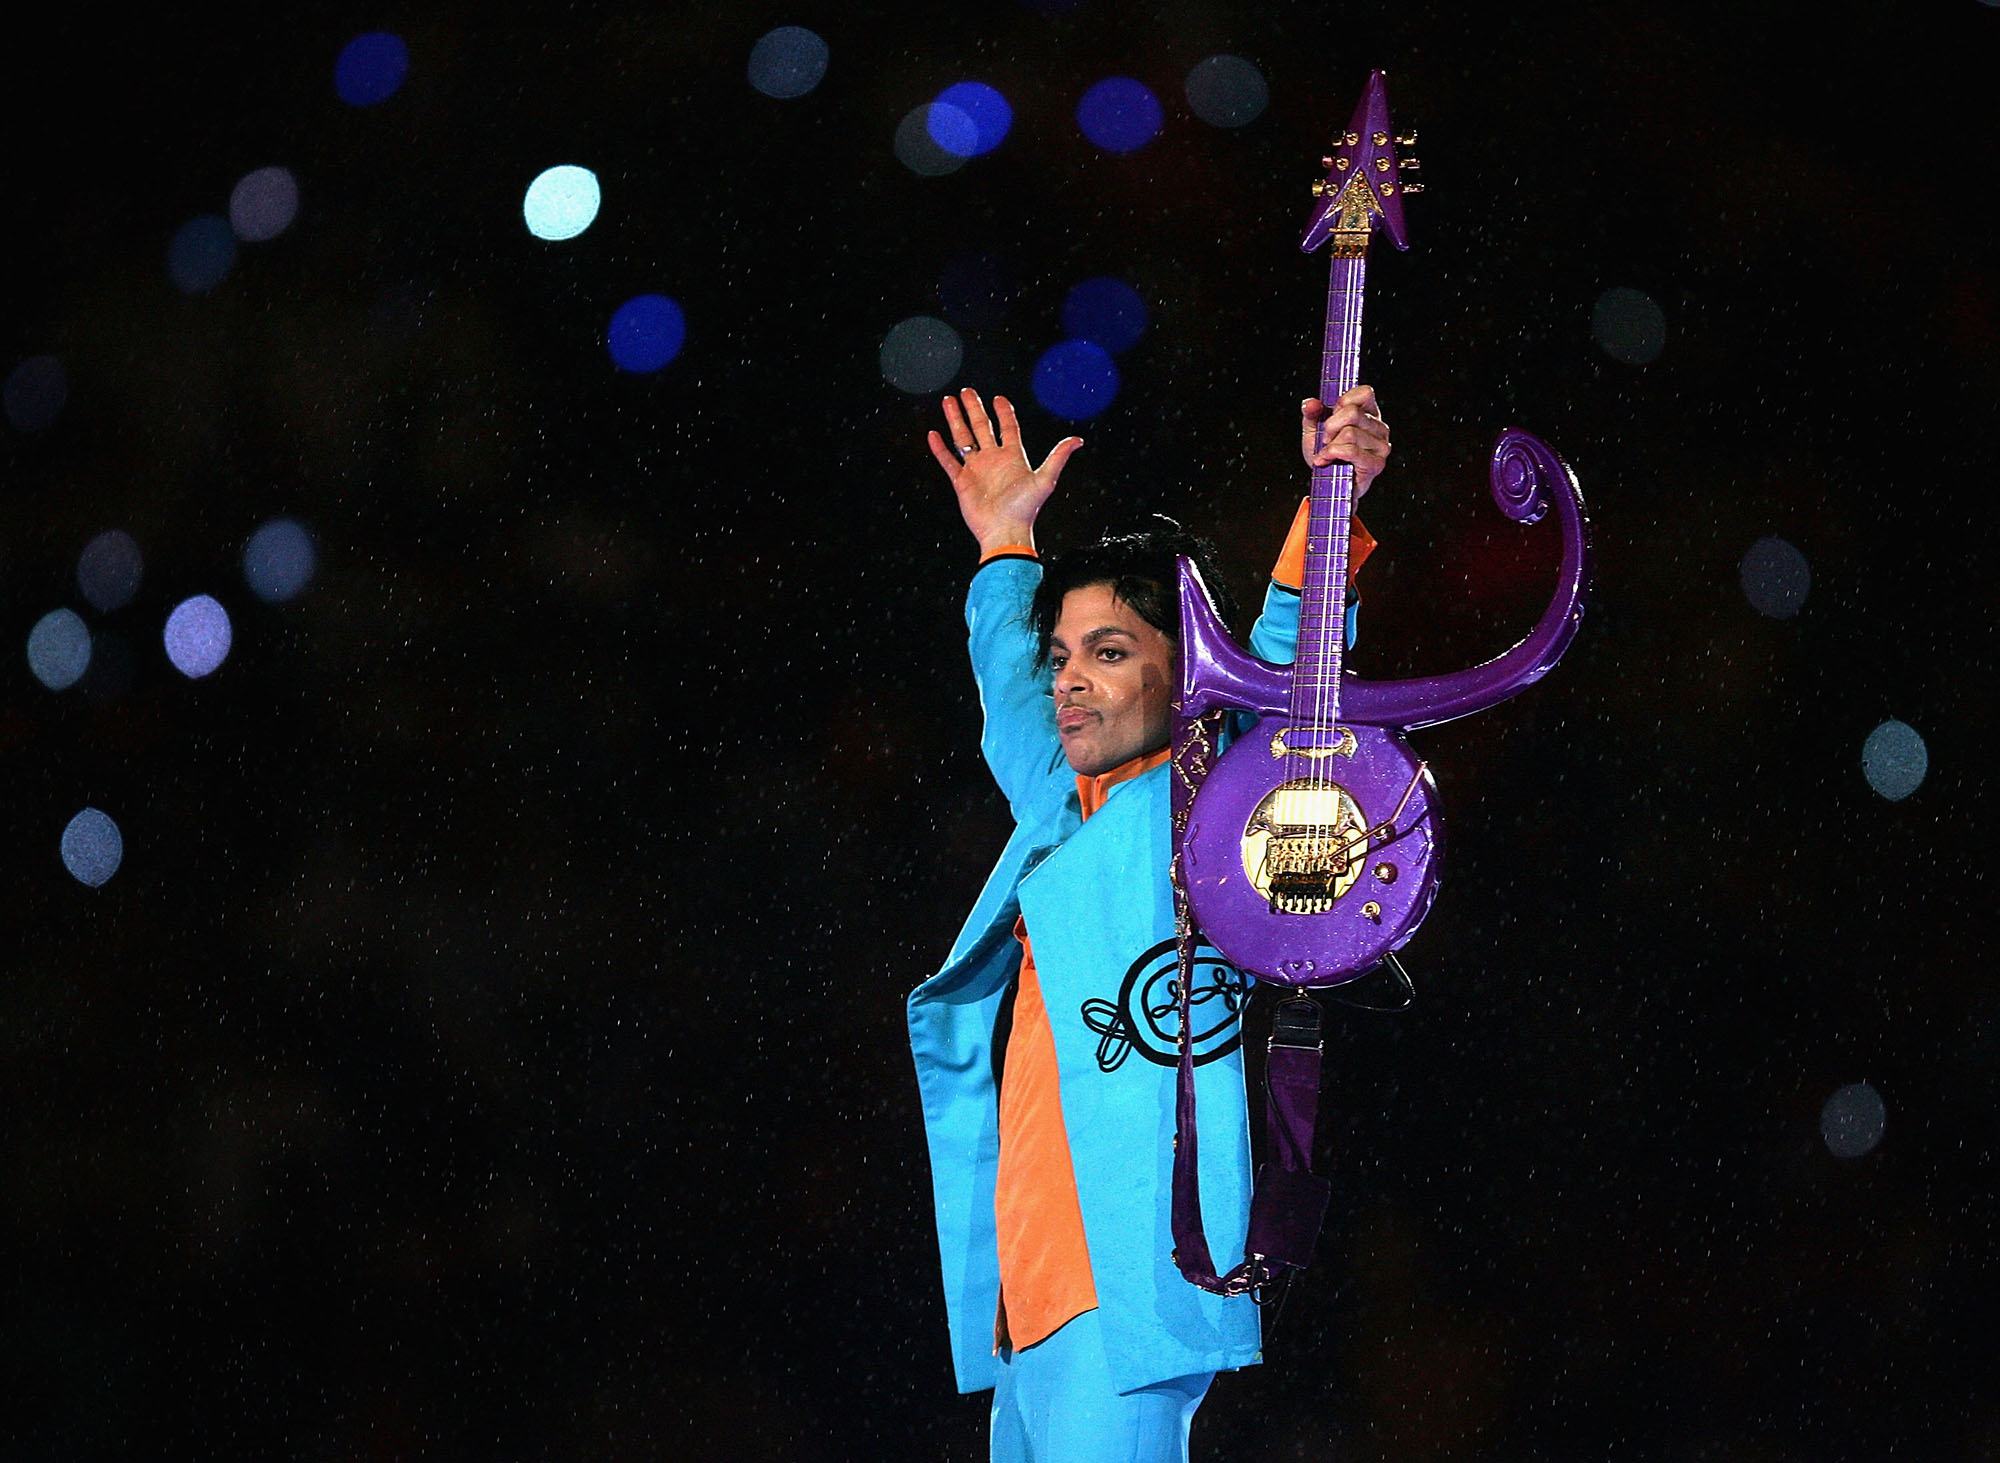 Prince performs during the  Pepsi Halftime Show  at Super Bowl XLI between the Indianapolis Colts and the Chicago Bears on February 4, 2007 at Dolphin Stadium in Miami Gardens, Florida.  (Photo by Jonathan Daniel/Getty Images)